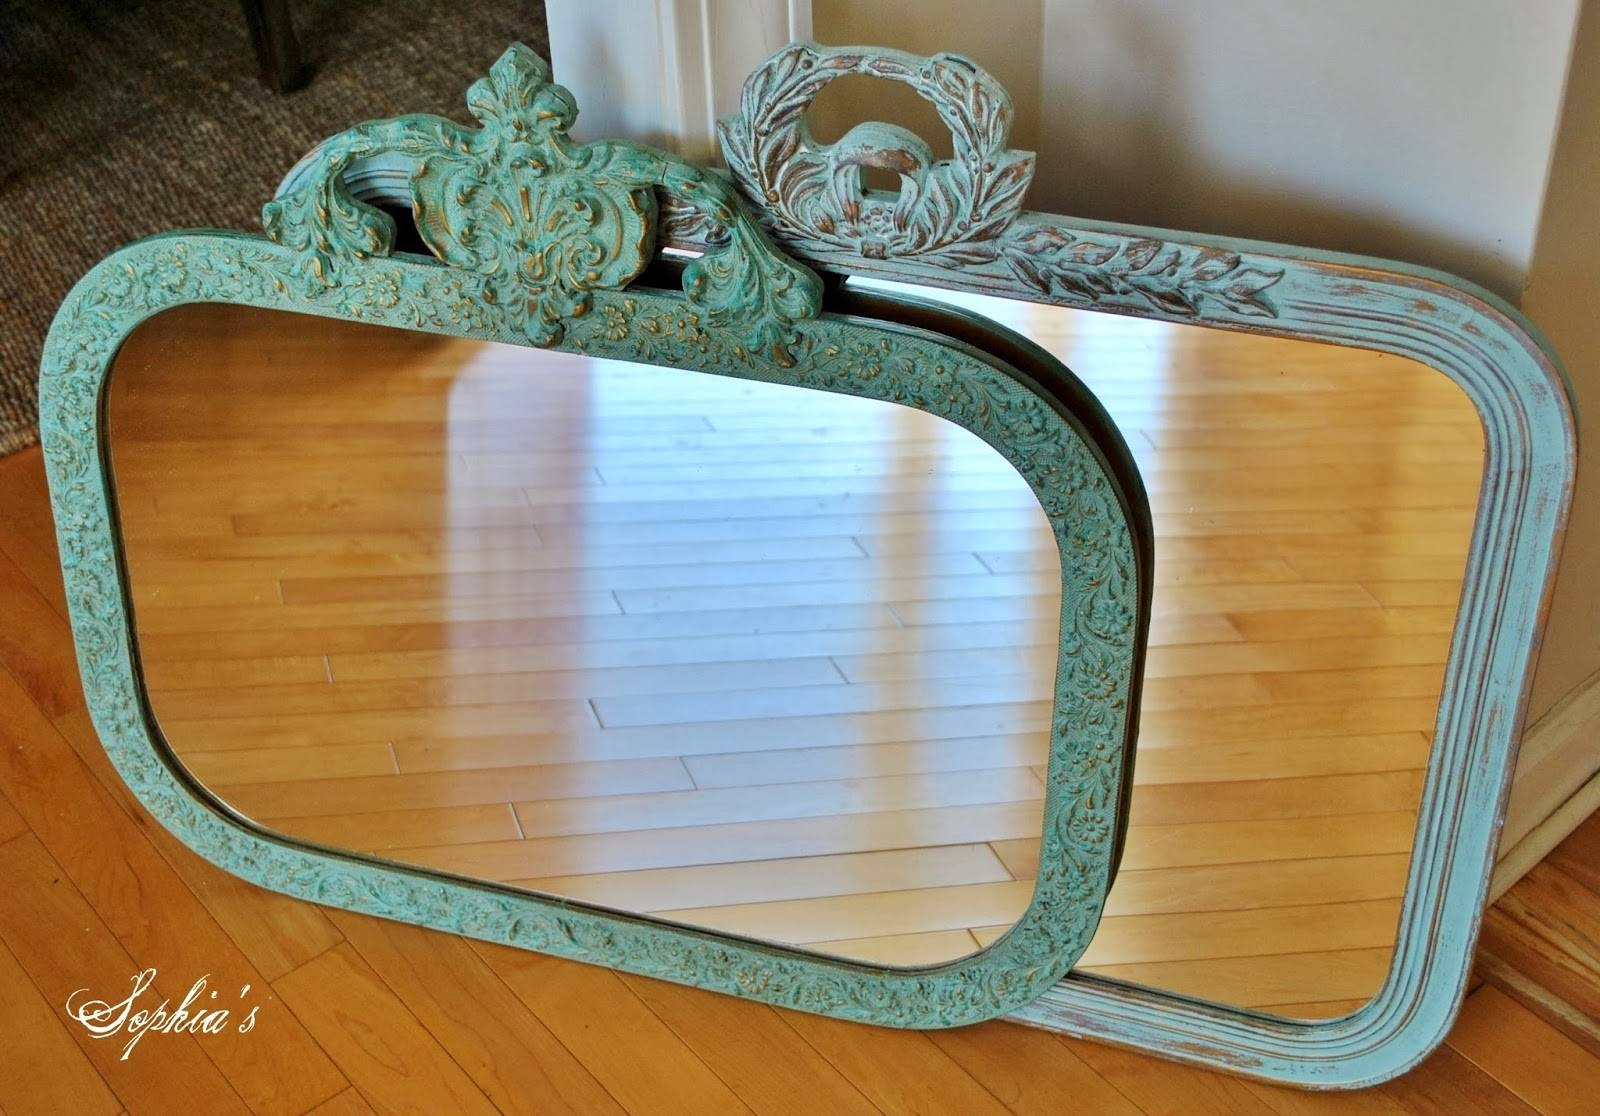 Sophia's: Updating Mirrors With Chalk Paint regarding Mirrors With Blue Frame (Image 24 of 25)